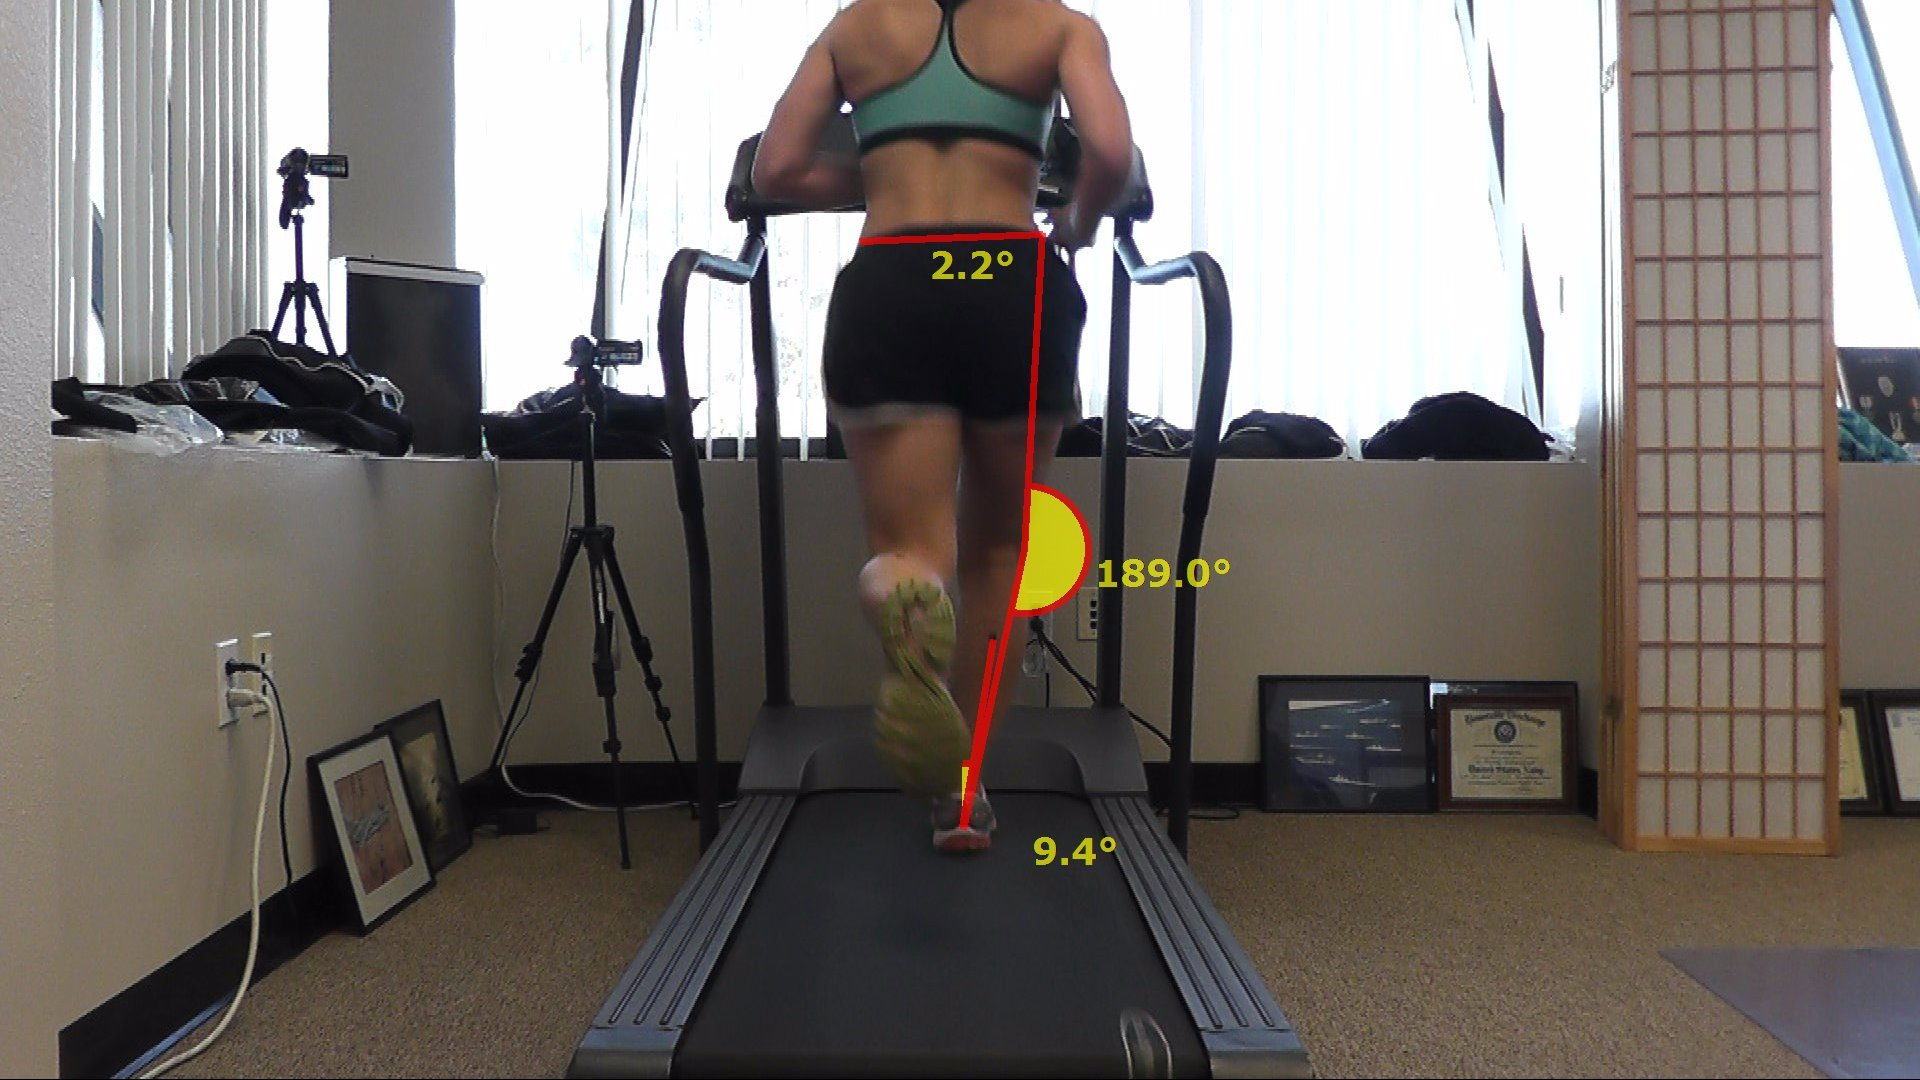 Computerized gait analysis can help prevent injury and improve form